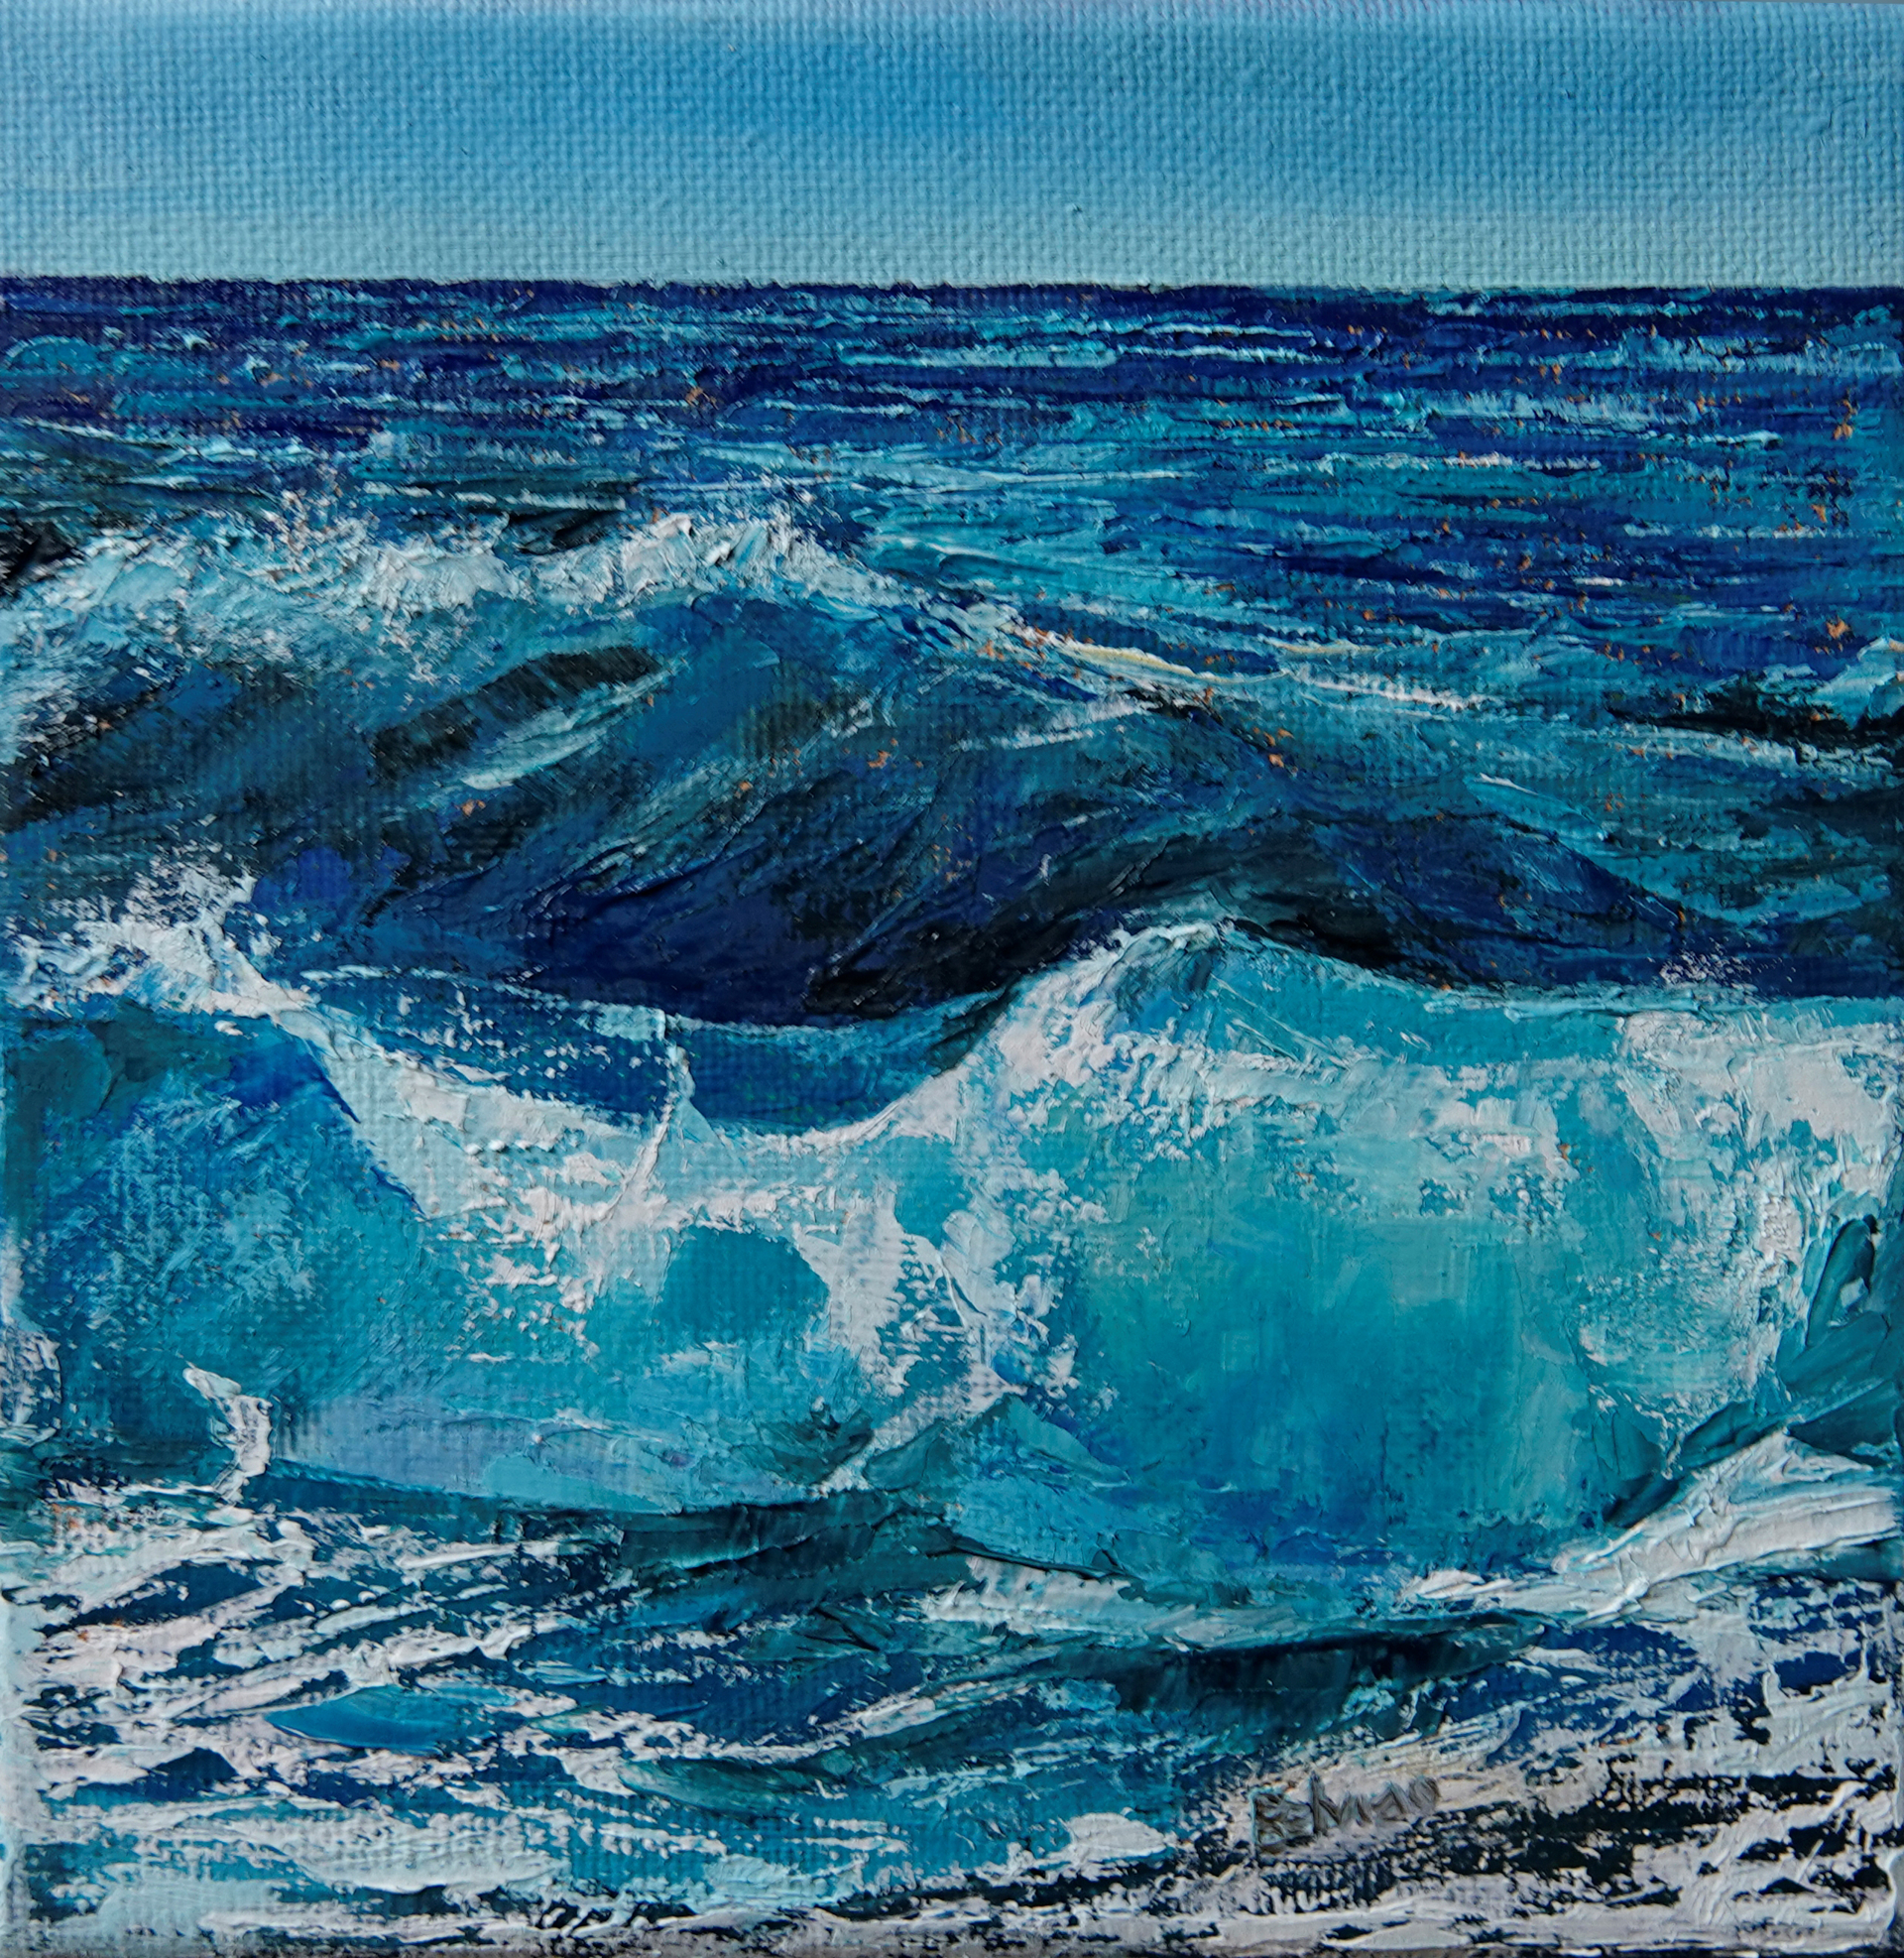 Turquoise Waves by Silvia Belviso